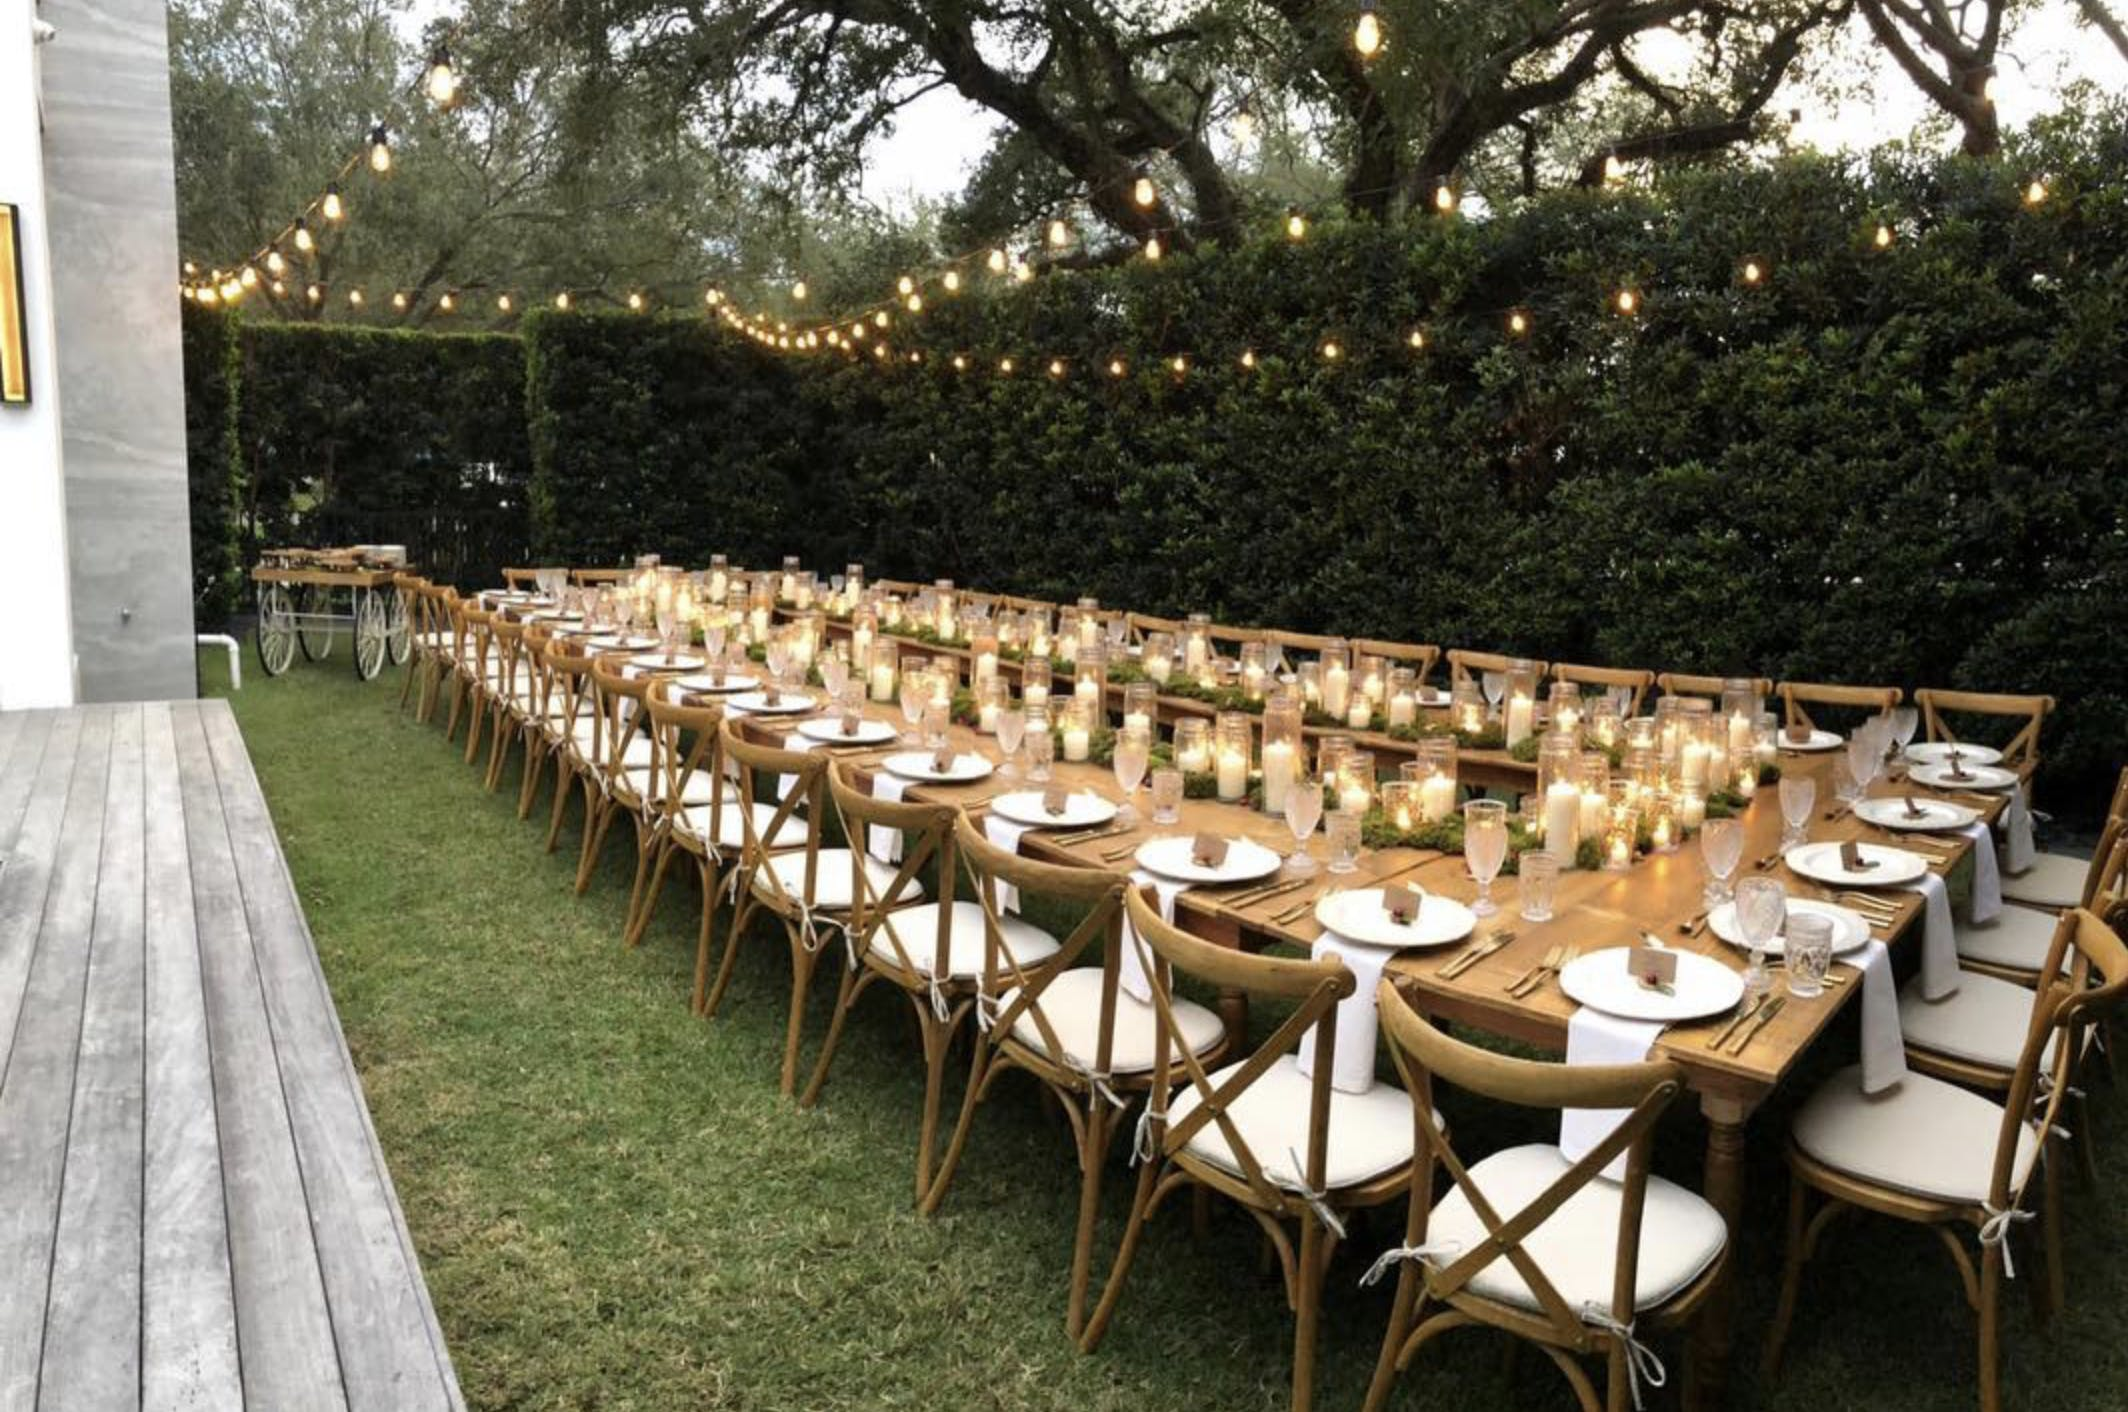 Rustic Chic Thanksgiving Dinner Party at Private Residence in Miami, FL